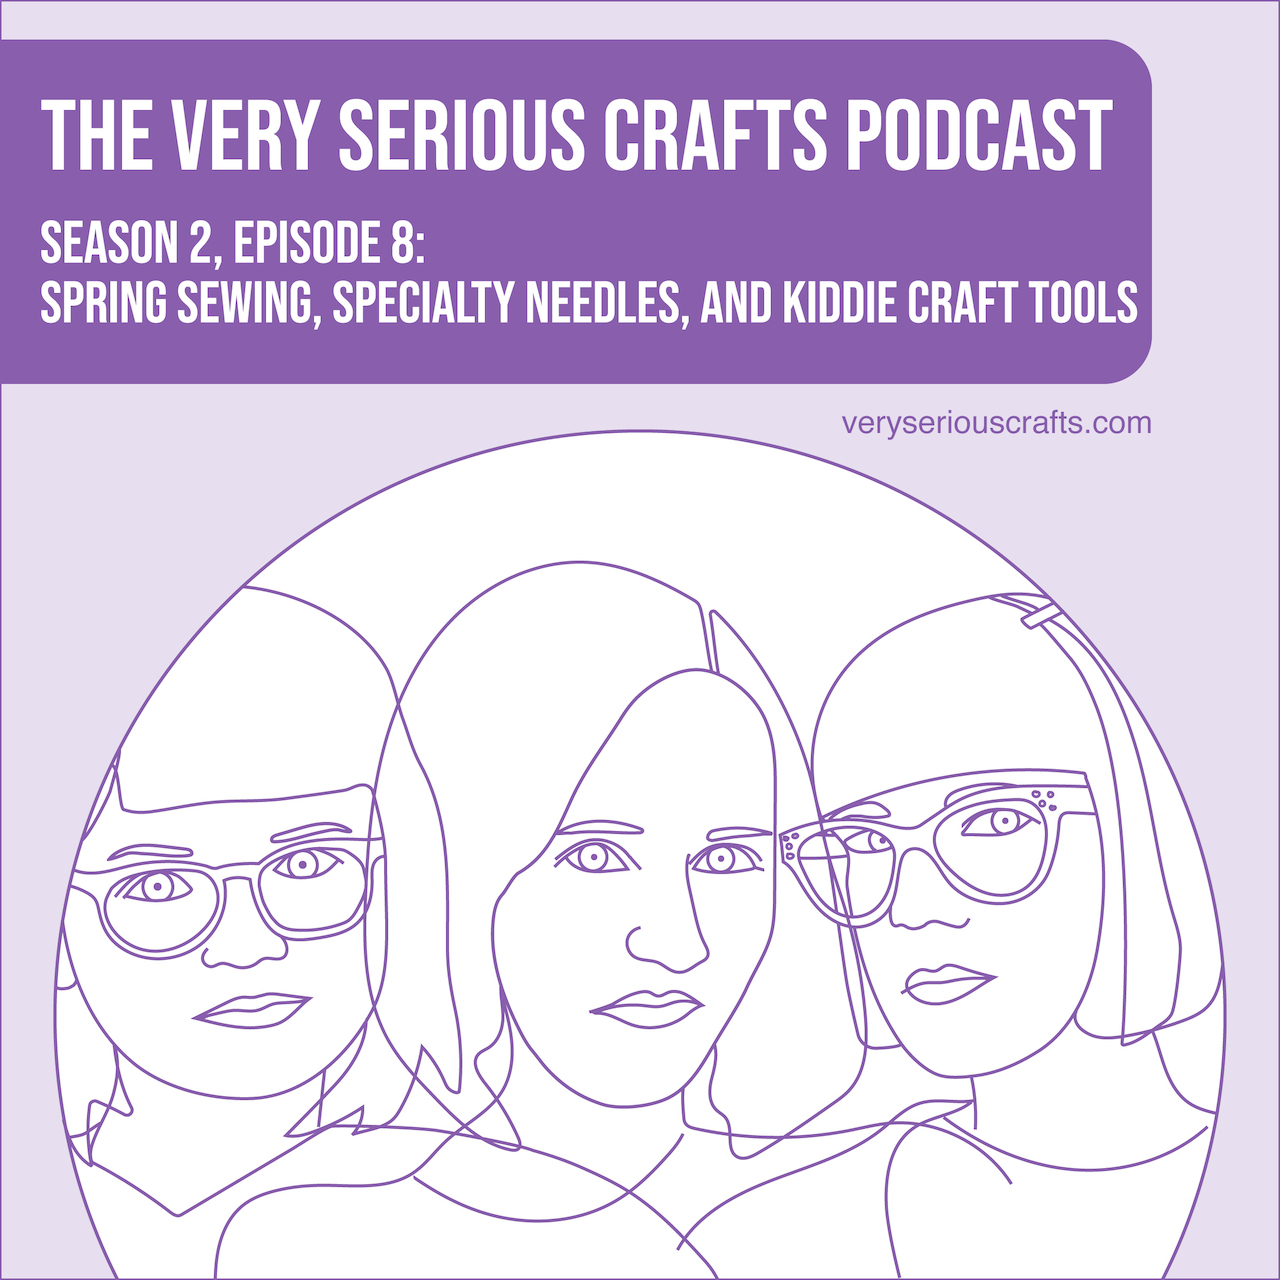 S2E08: Spring Sewing, Specialty Needles, and Kiddie Craft Tools